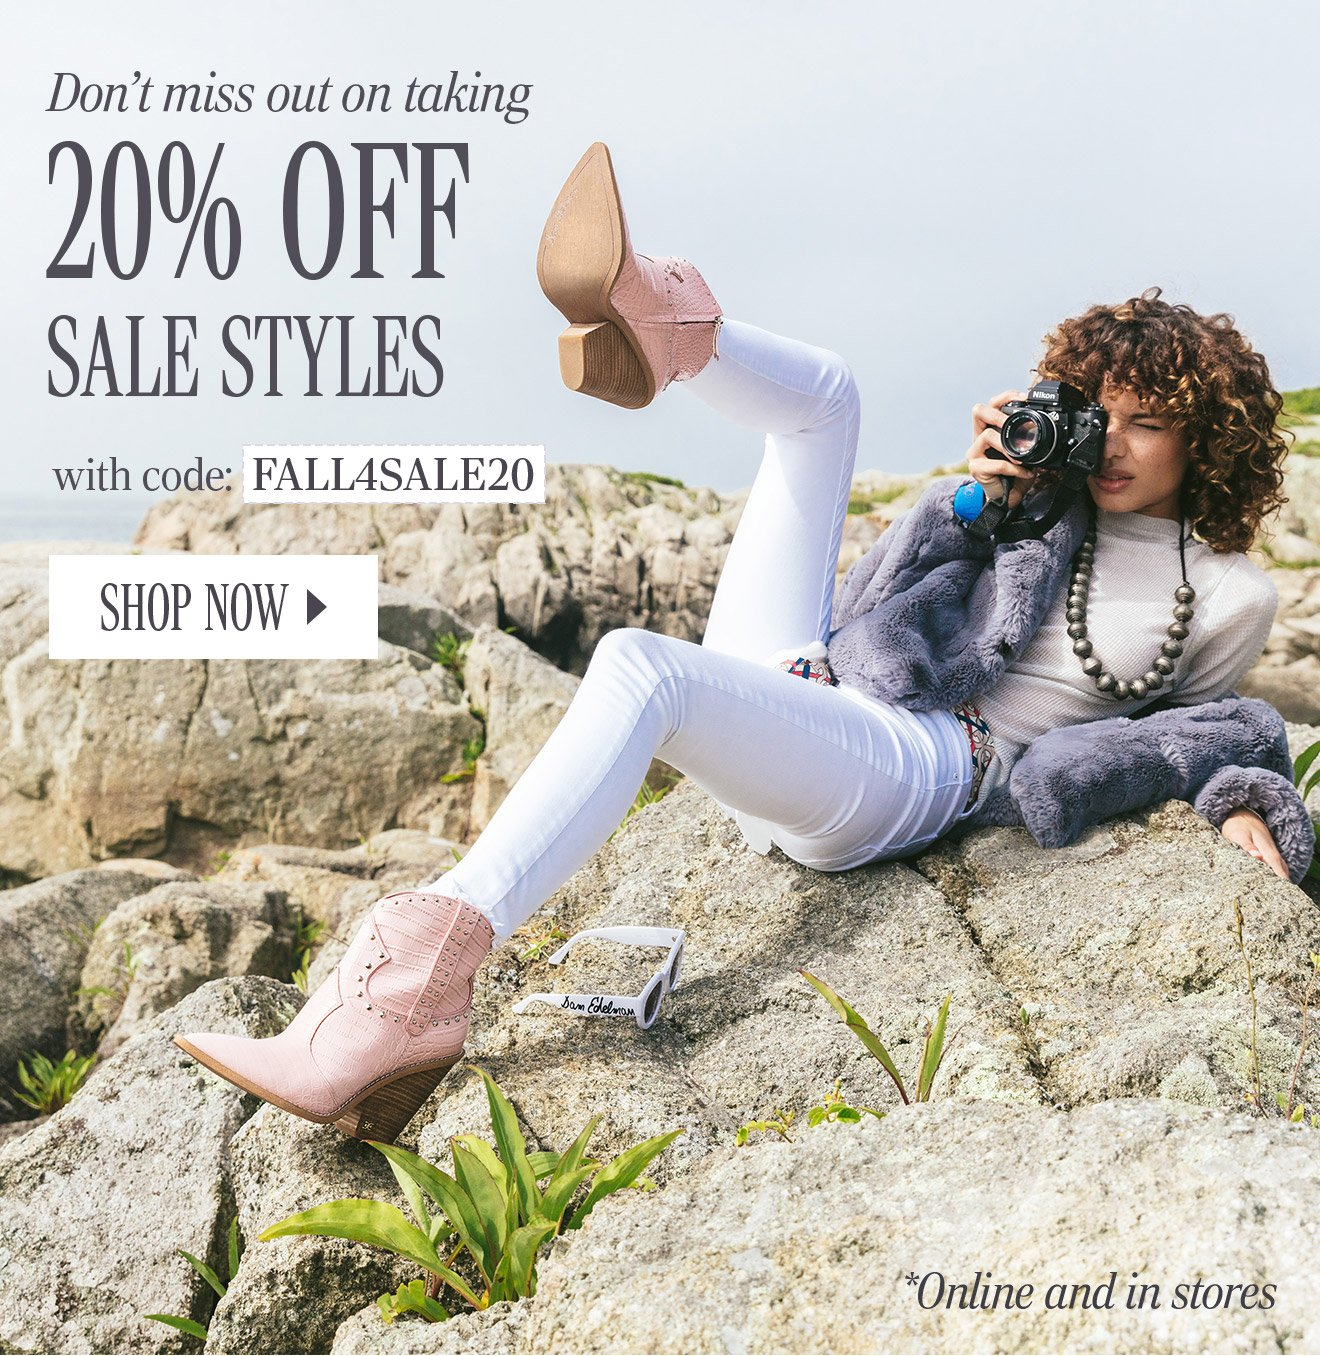 Don't miss out on taking 20% OFF SALE STYLES with code: FALL4SALE20. SHOP NOW. *Online and in stores.